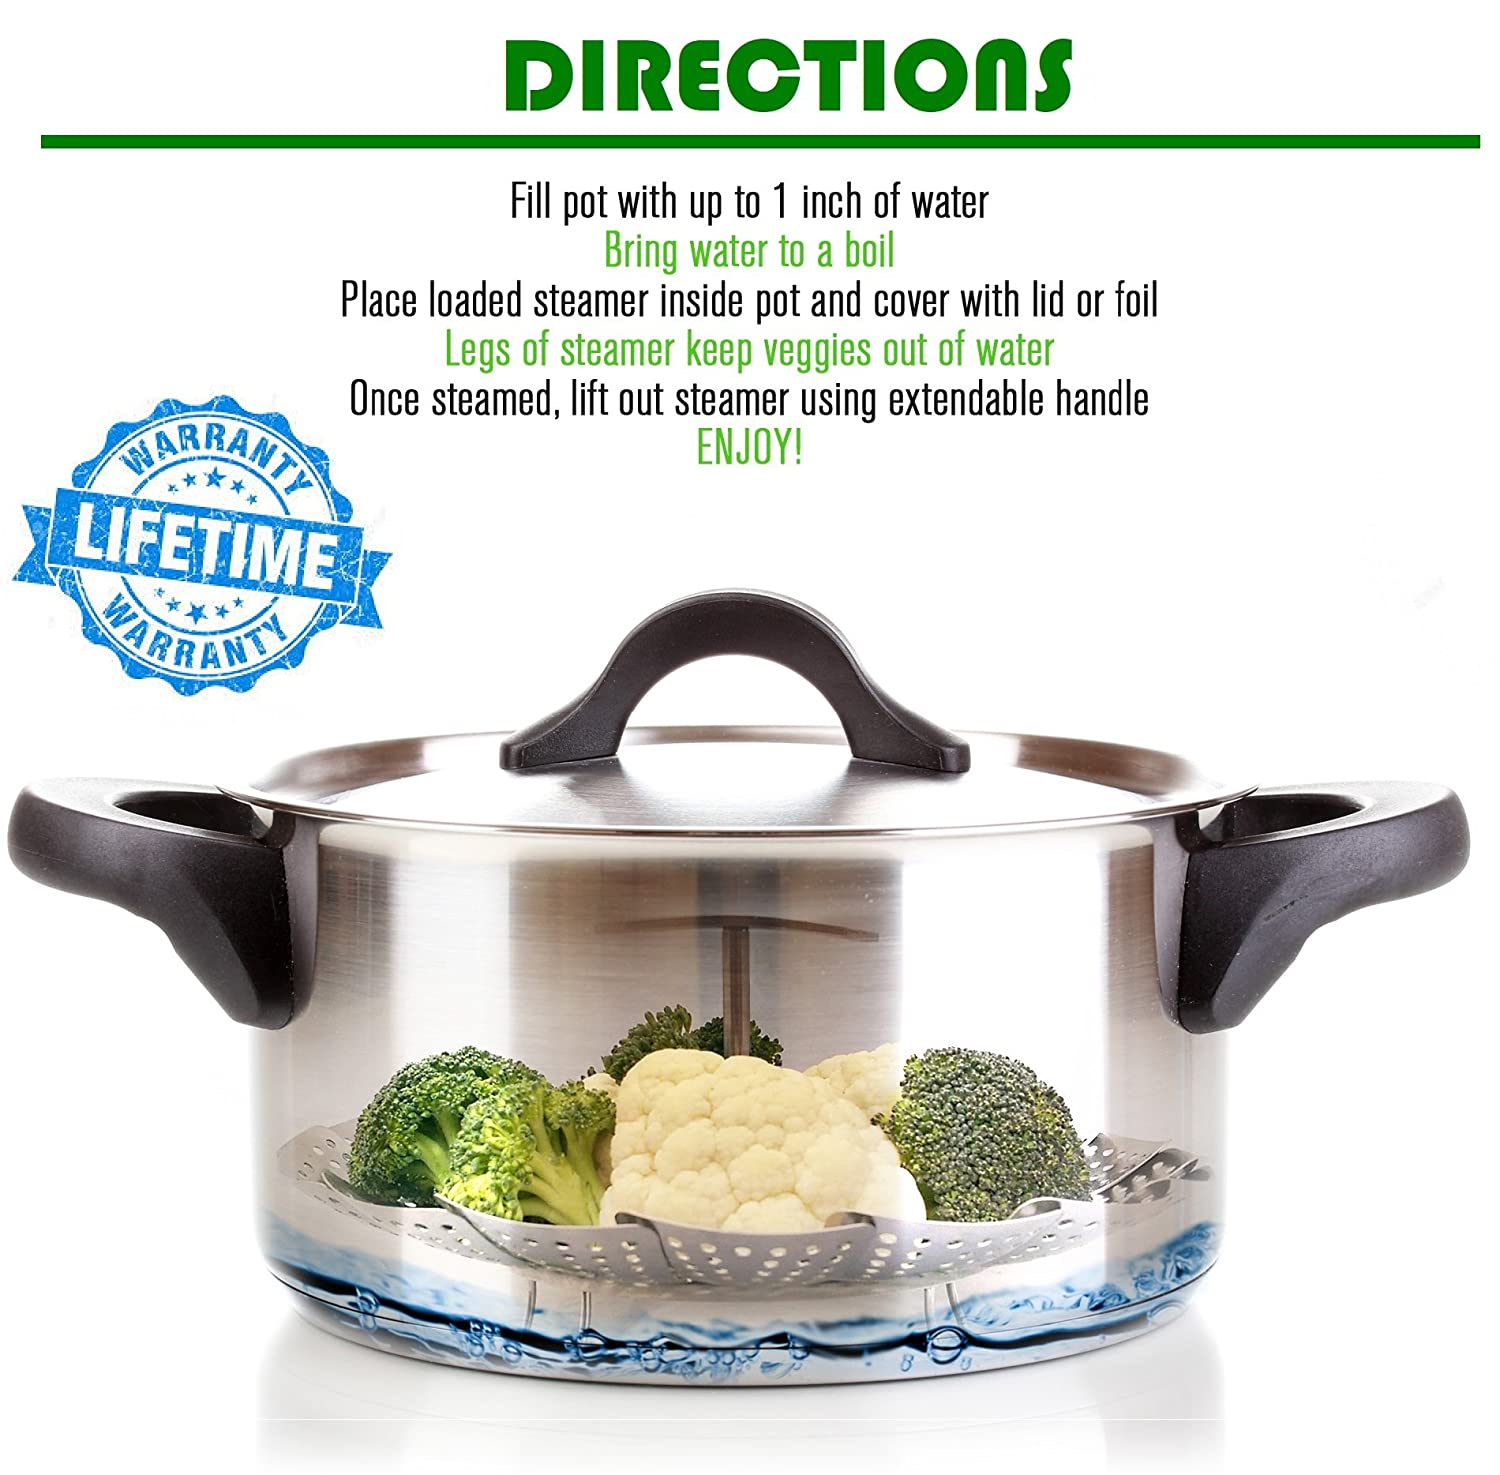 Insert For Instapot Pressure Cooker 3 Fits Instant Pot Accessories Include Safety Tool 5 100/% Stainless Steel Kitchen Deluxe Vegetable Steamer Basket Peeler eBook 6 Quart /& 8 Qt Steamer Basket Instant Pot Accessories